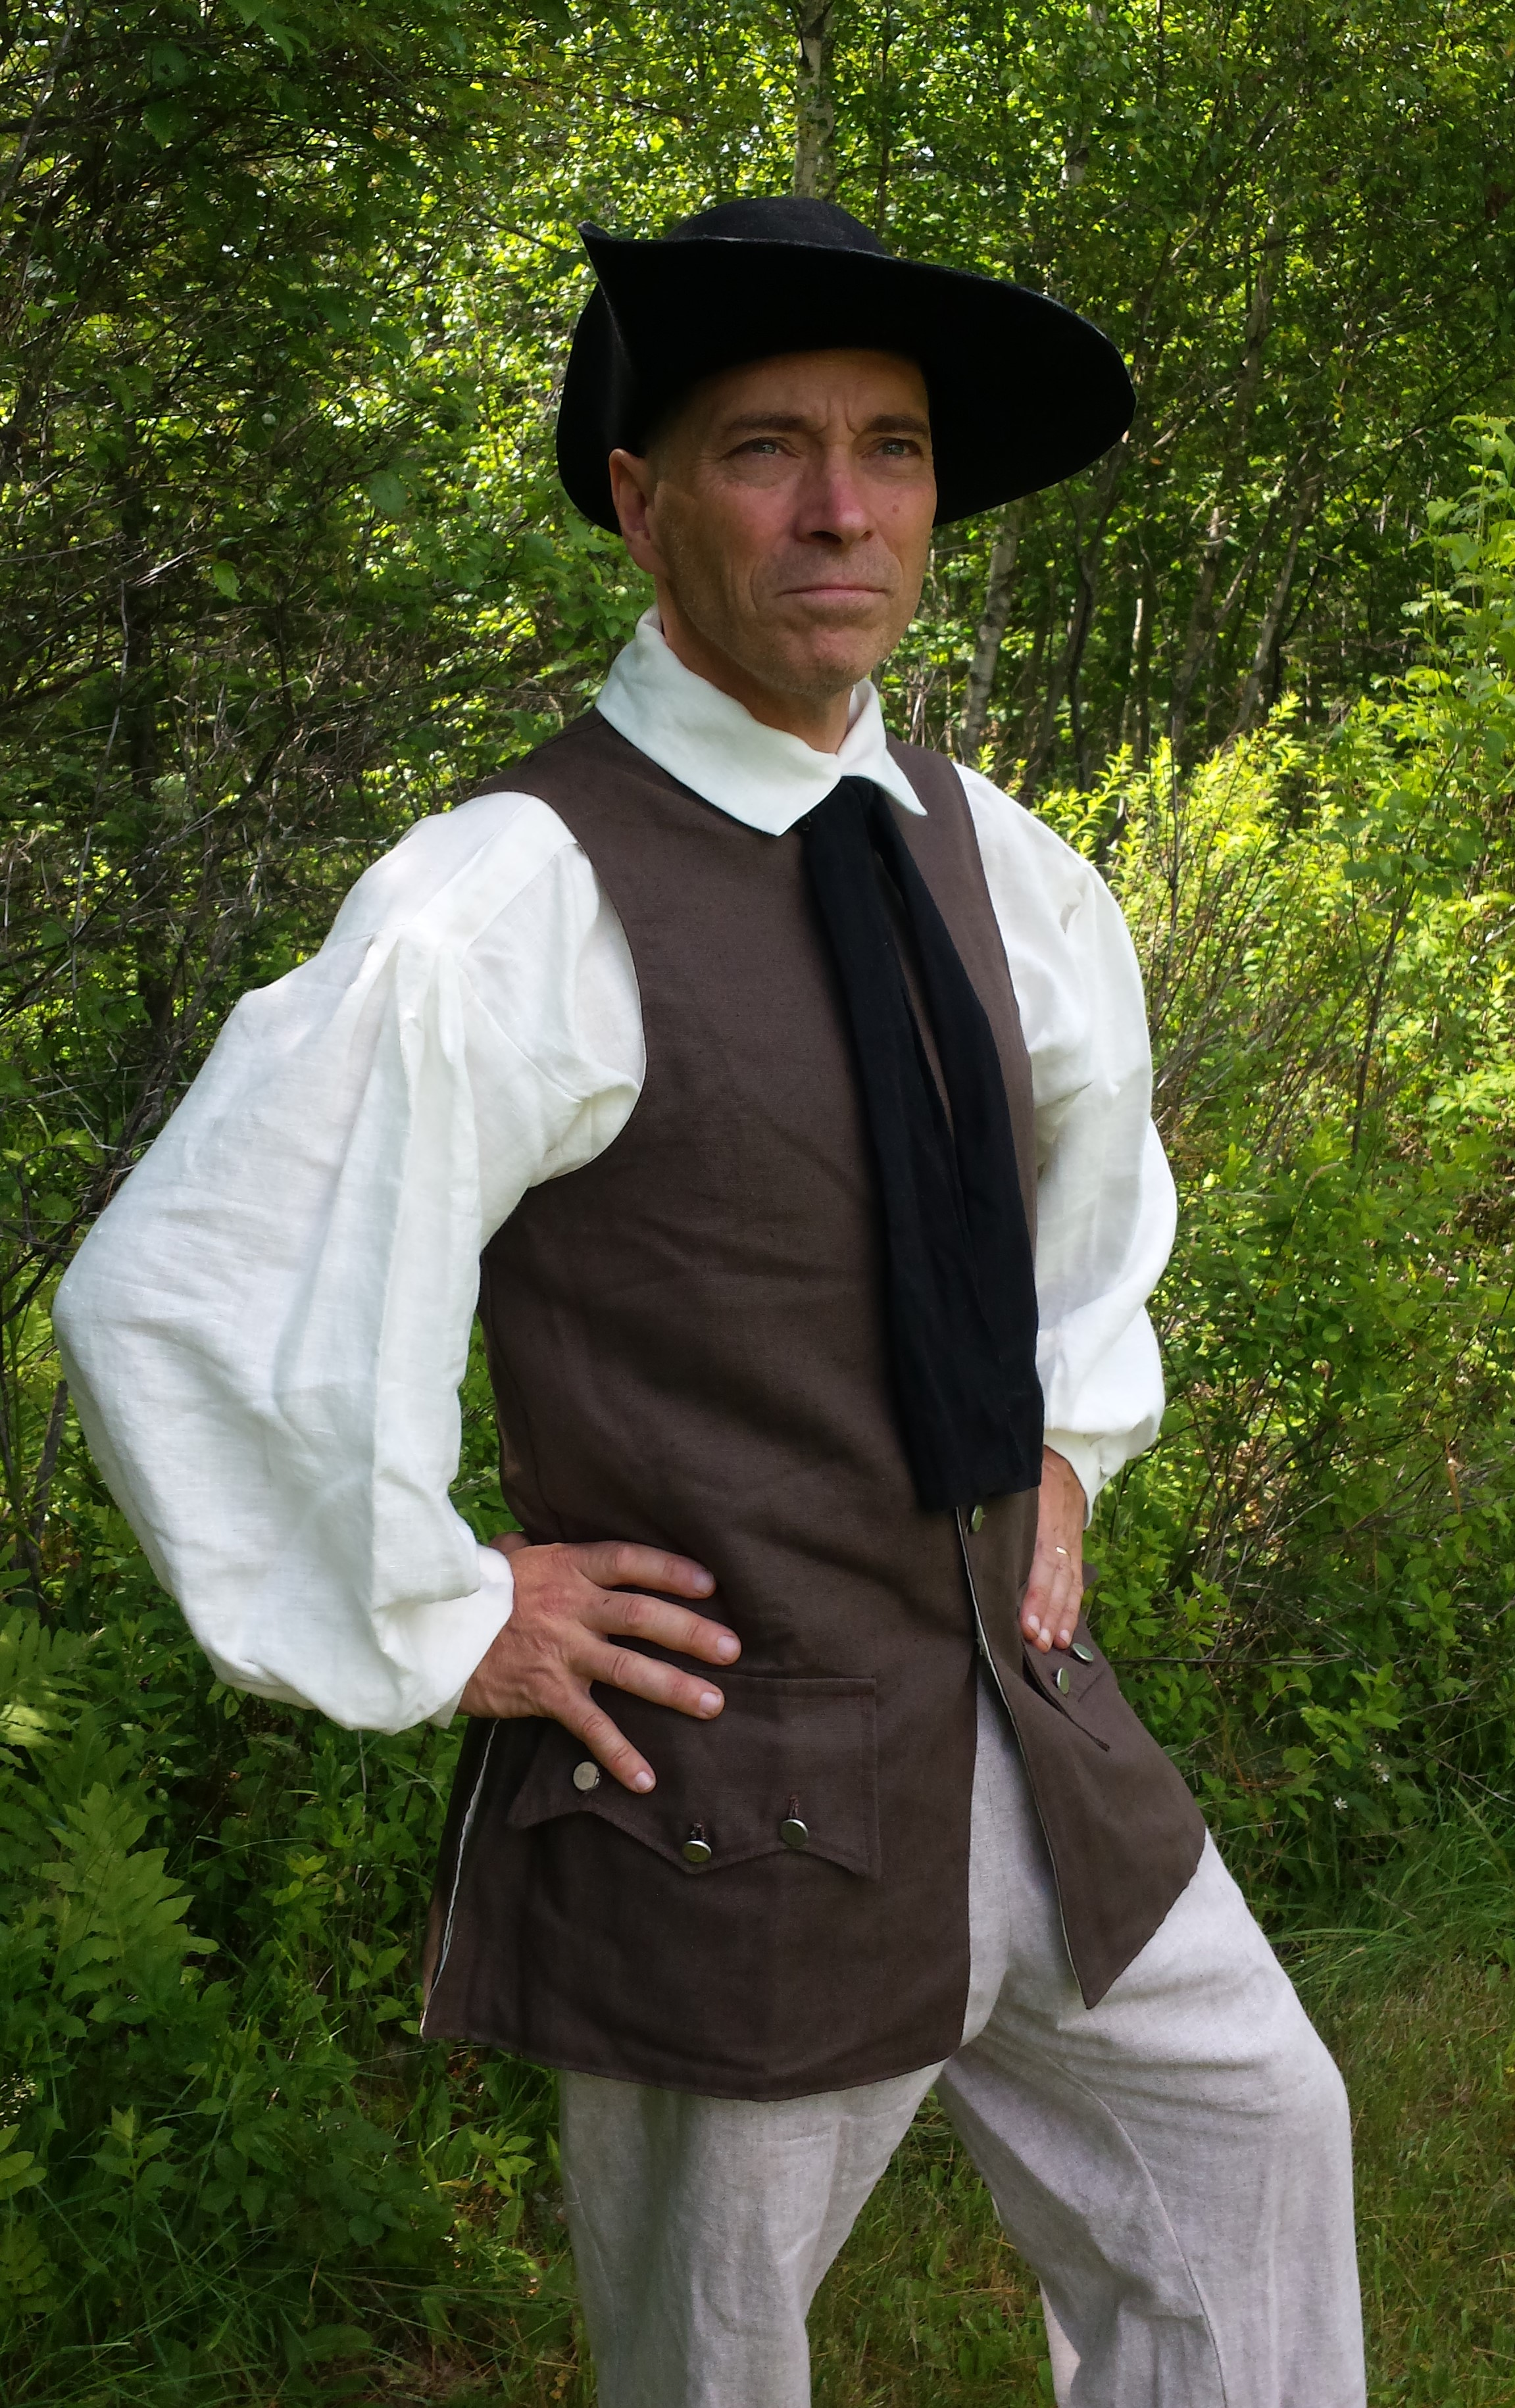 Weskit; Waistcoat; Vest; 18th Century Waistcoat; 18th Century Vest; 18th Century Weskit; Ranger Vest; Ranger Waistcoat; Ranger Weskit; Colonial Vest; Colonial Waistcoat; Colonial Weskit; Reenactment Weskit; Reenactment Waistcoat; Reenactment Vest; Revolutionary War Vest; Revolutionary War Waistcoat; Revolutionary War Weskit; French and Indian War Vest; French and Indian War Waistcoat; French and Indian War Weskit;